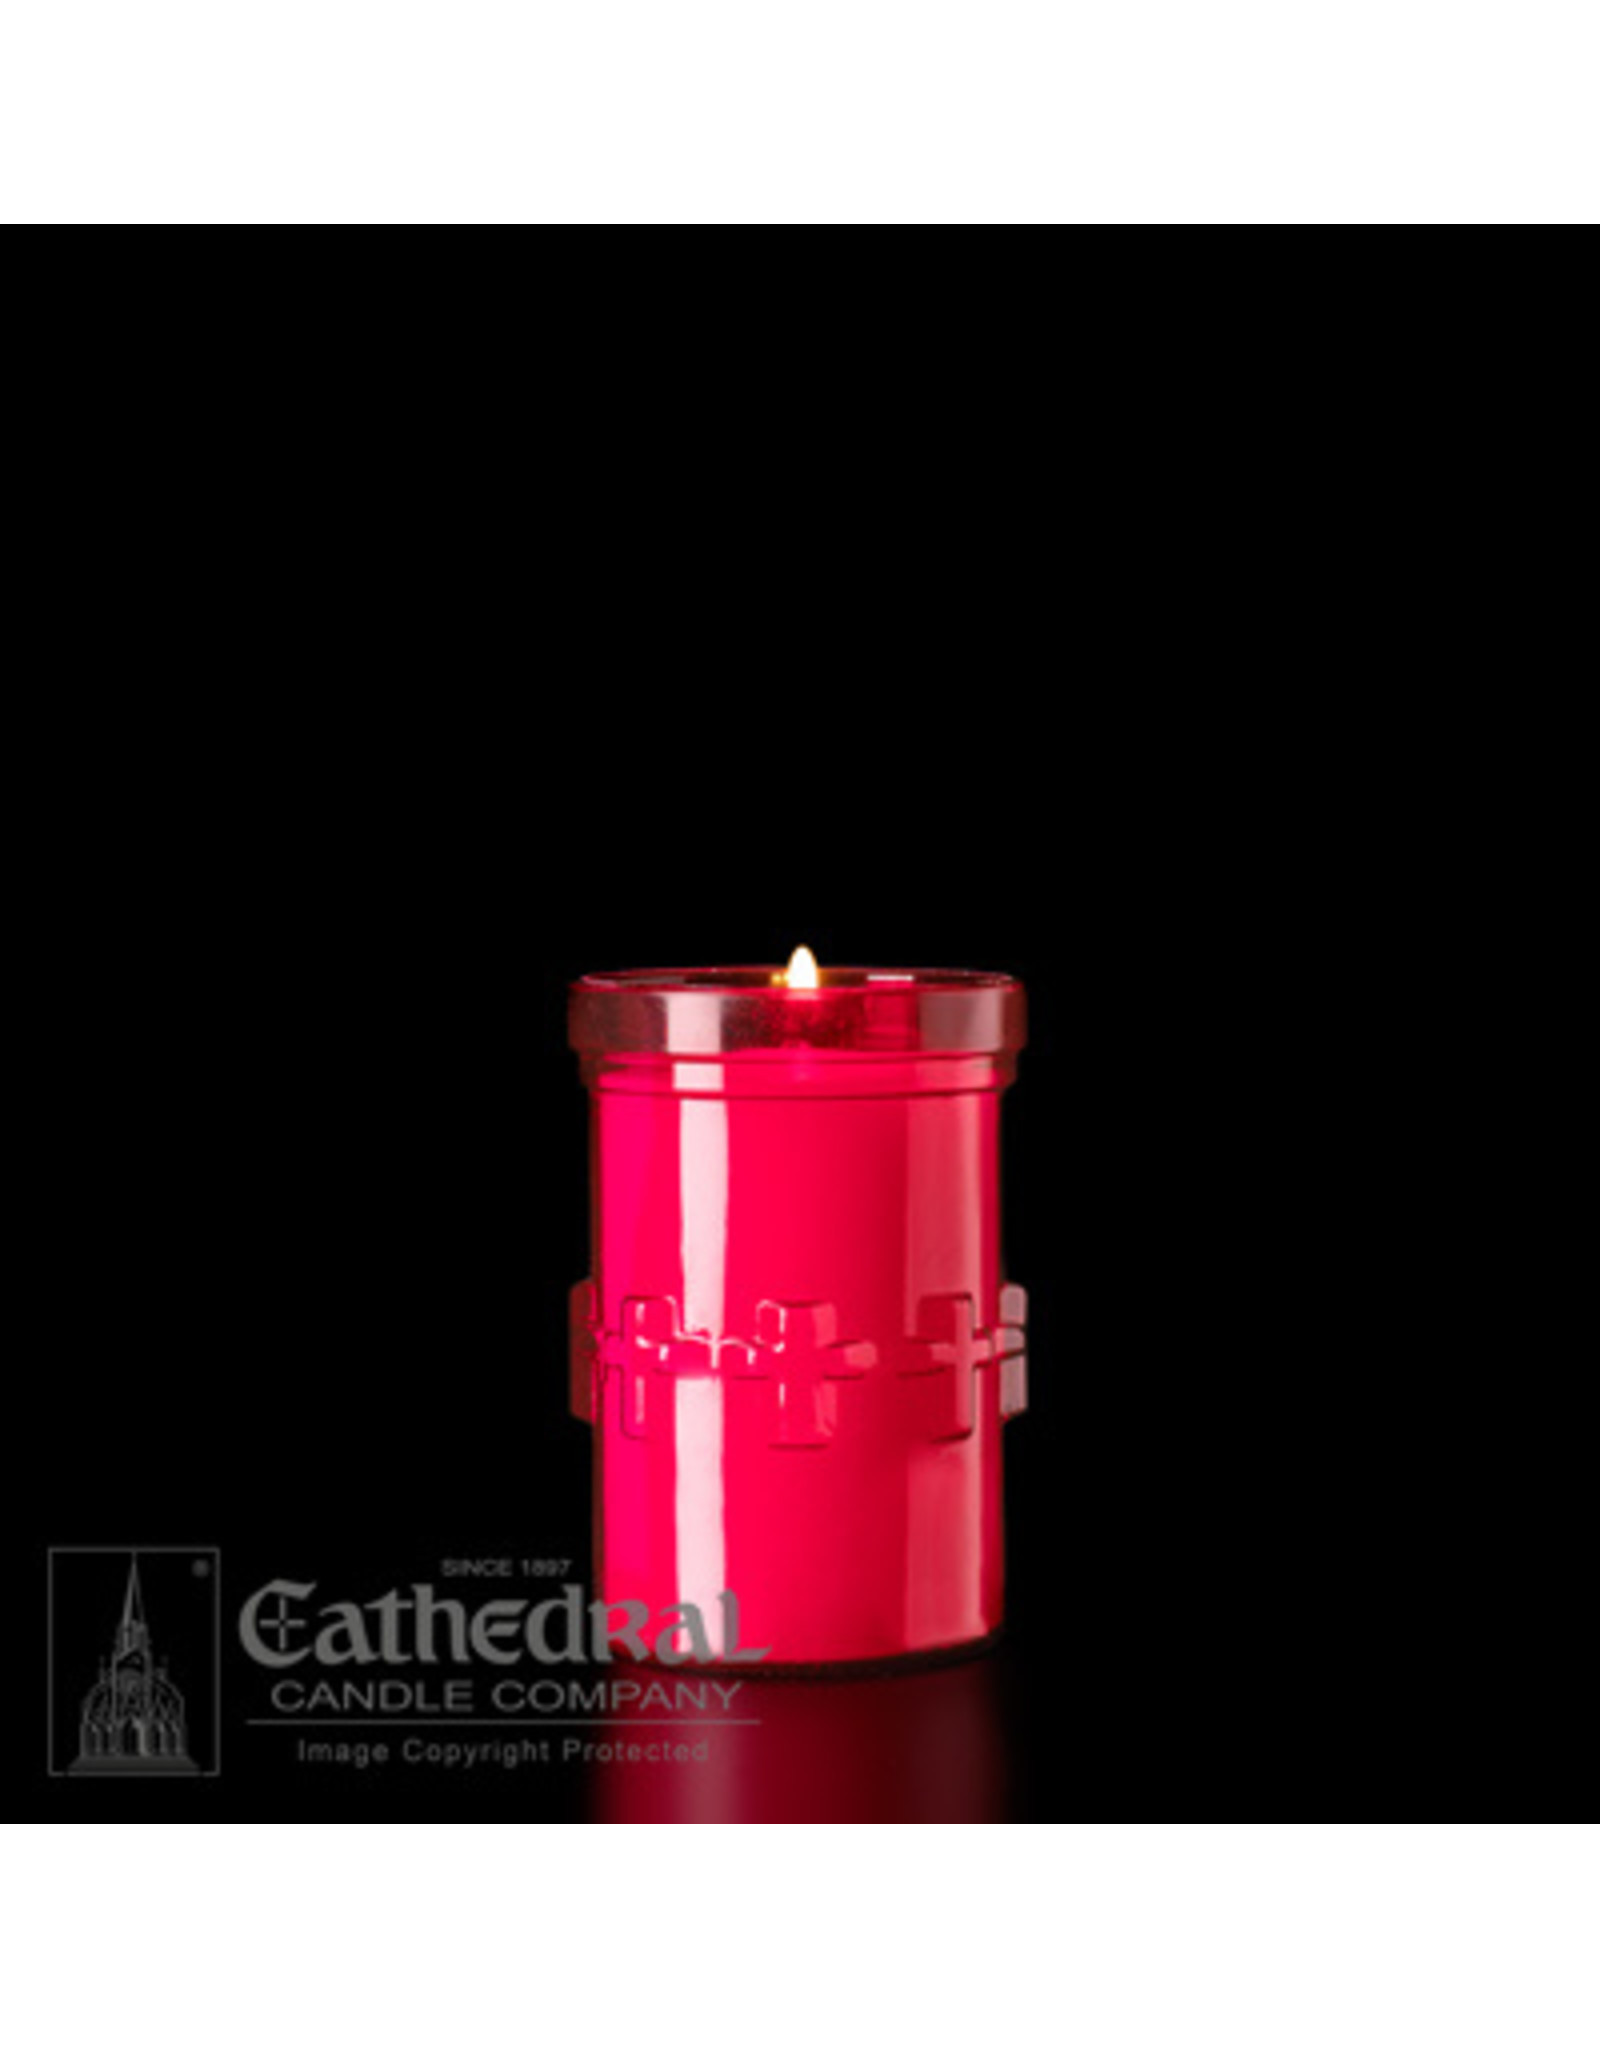 3-Day Devotiona-Lite Ruby Plastic Candle